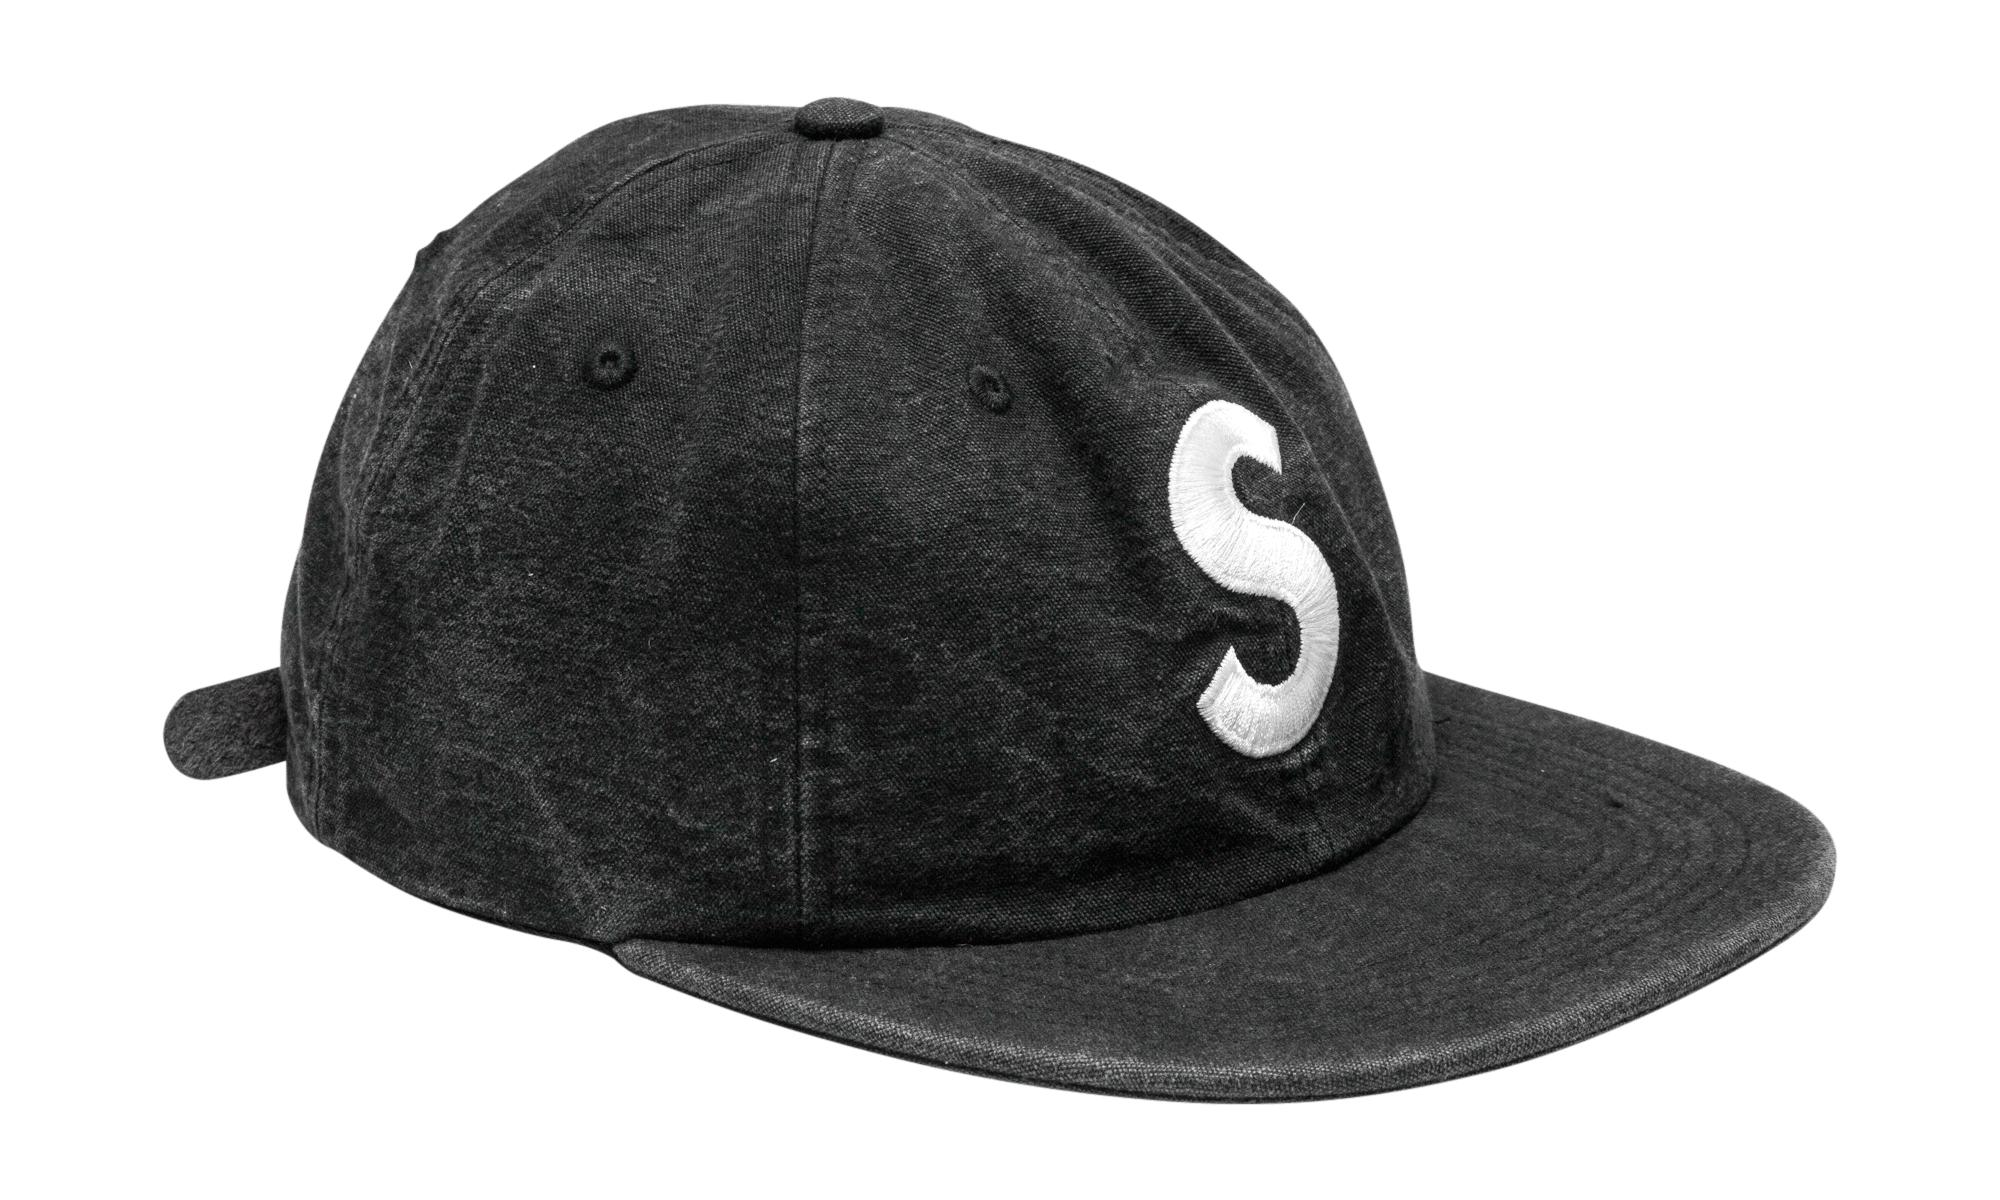 73814726ca6 Supreme - Black Washed Chambray S Logo 6-panel for Men - Lyst. View  fullscreen